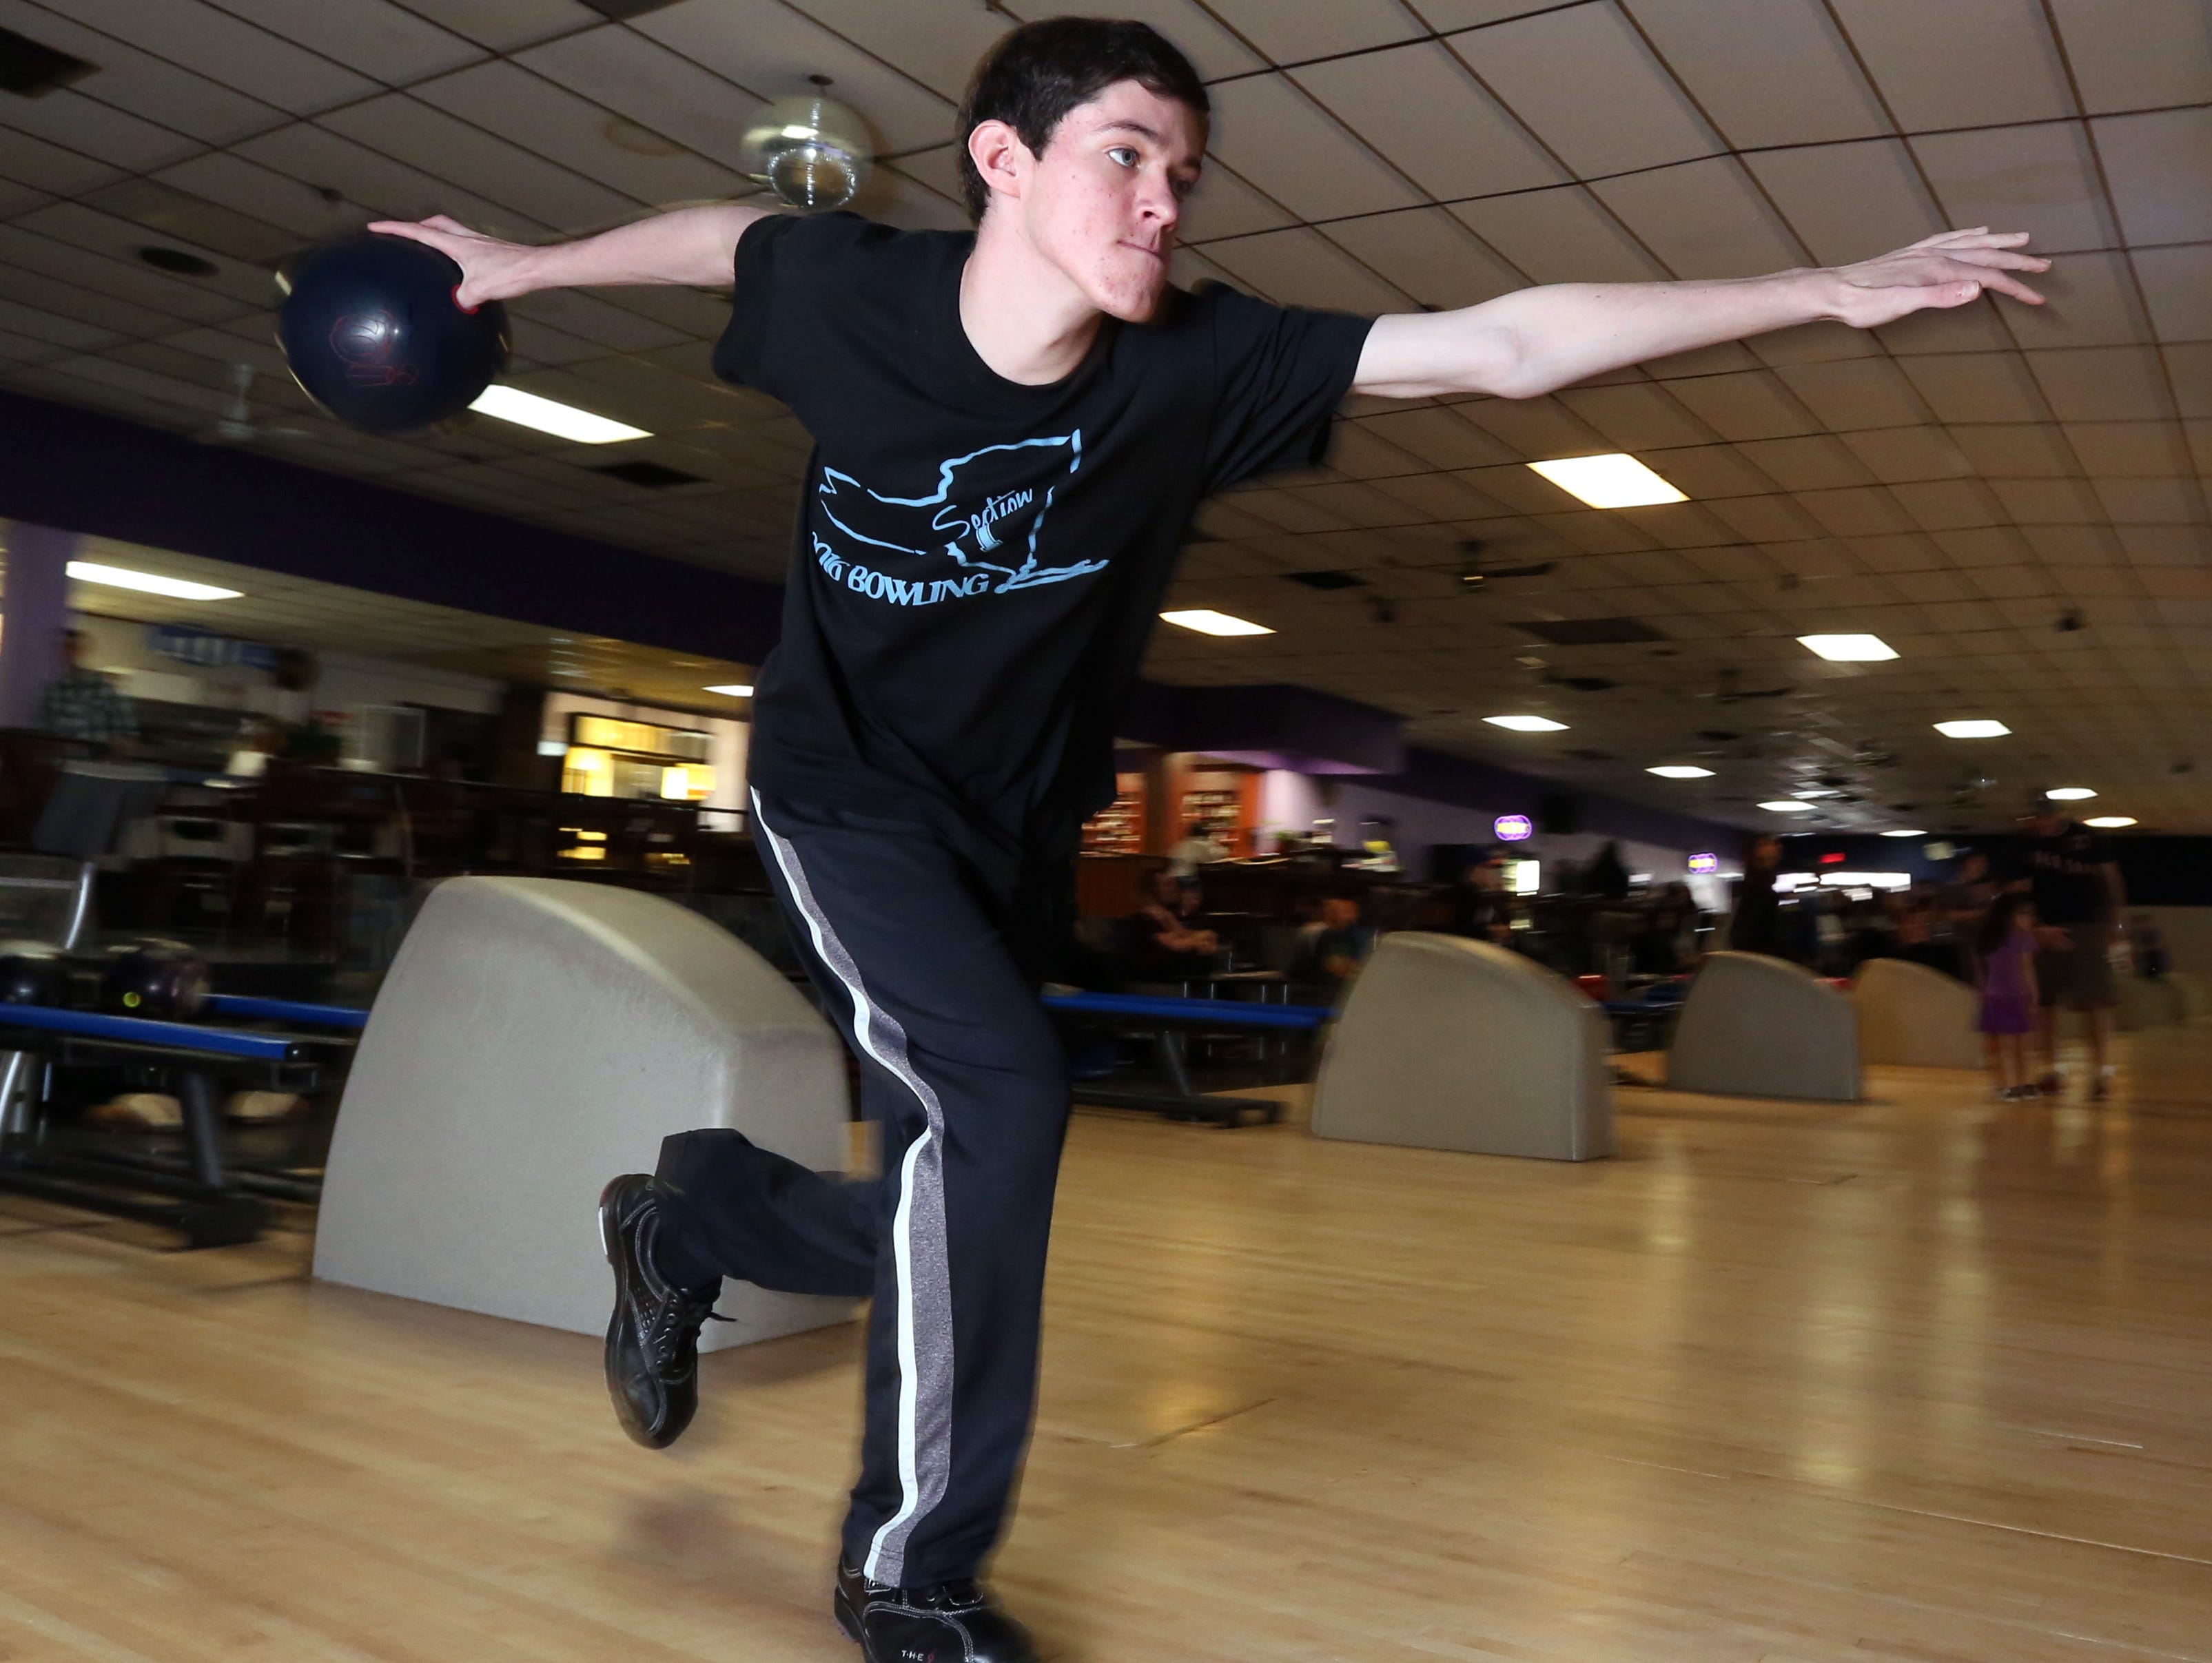 Rockland bowler of the year Brandon Smith of Clarkstown at New City Bowl March 25, 2016.